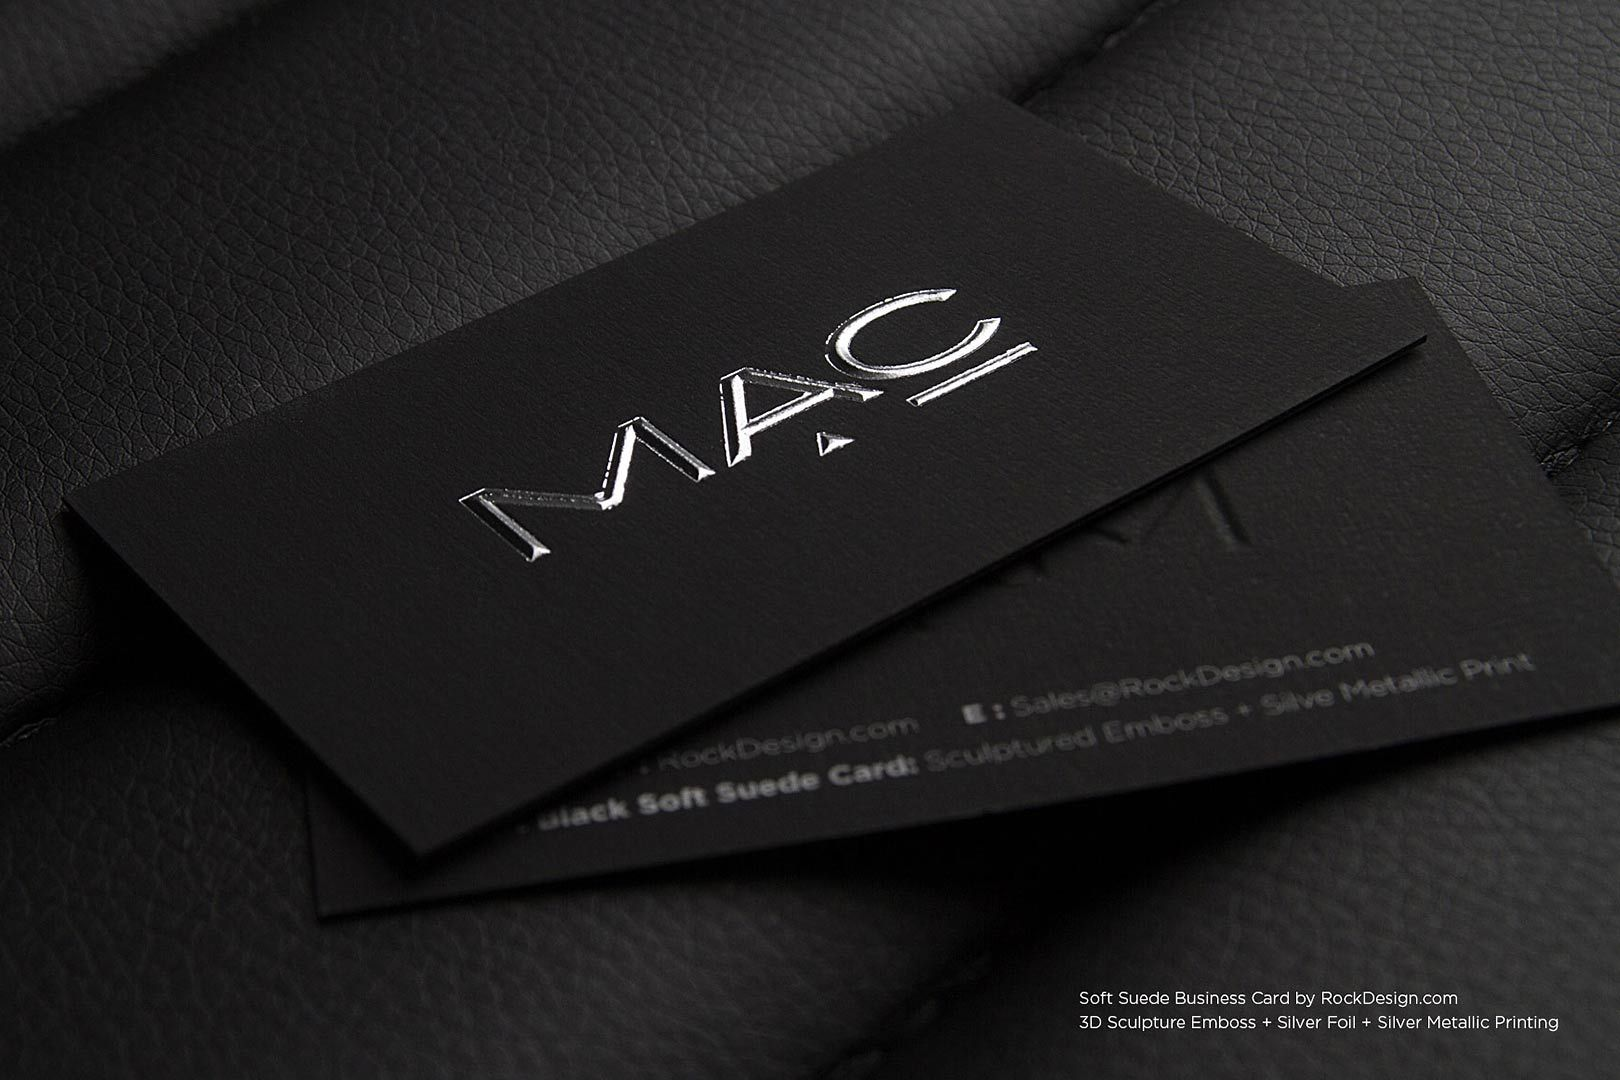 Soft suede business cards rockdesign luxury business card soft suede business cards rockdesign luxury business card printing colourmoves